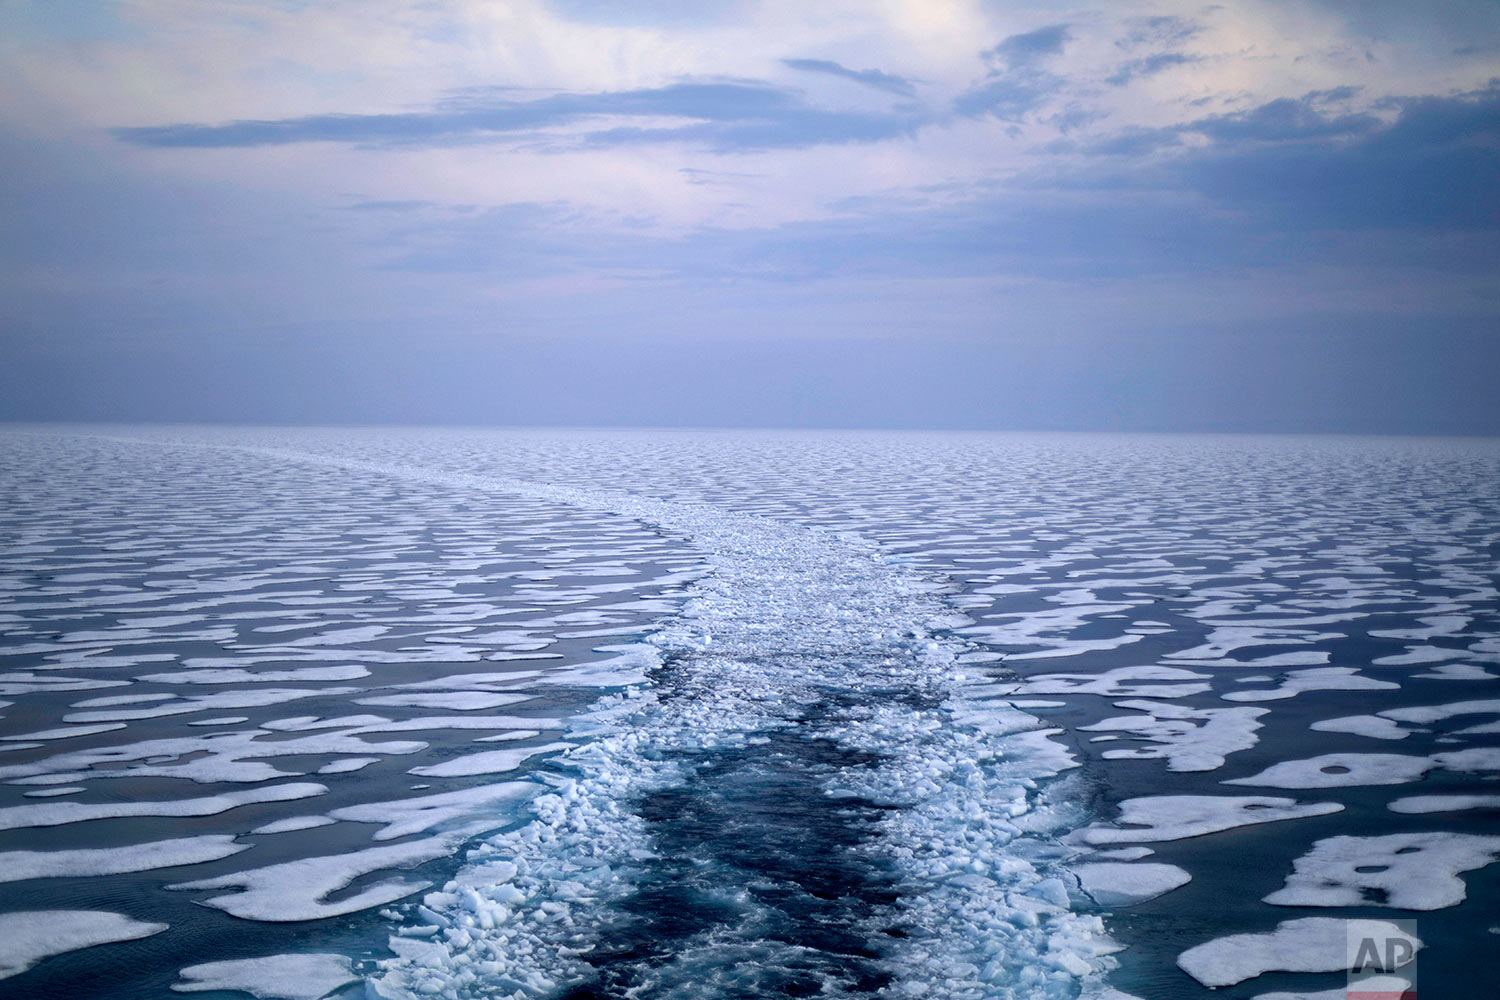 A path in the ice is left in the wake of the Finnish icebreaker MSV Nordica as it traverses the Northwest Passage through the Franklin Strait in the Canadian Arctic Archipelago Saturday, July 22, 2017. Researchers on the trip sought to observe the changes taking place in the region first hand, to gain a clearer picture of the effects of global warming already seen from space. Even the dates of the journey were a clue: The ship departed Vancouver in early July and arrived in Nuuk, Greenland on July 29th, the earliest transit ever of a region that isn't usually navigable until later in the year. (AP Photo/David Goldman)